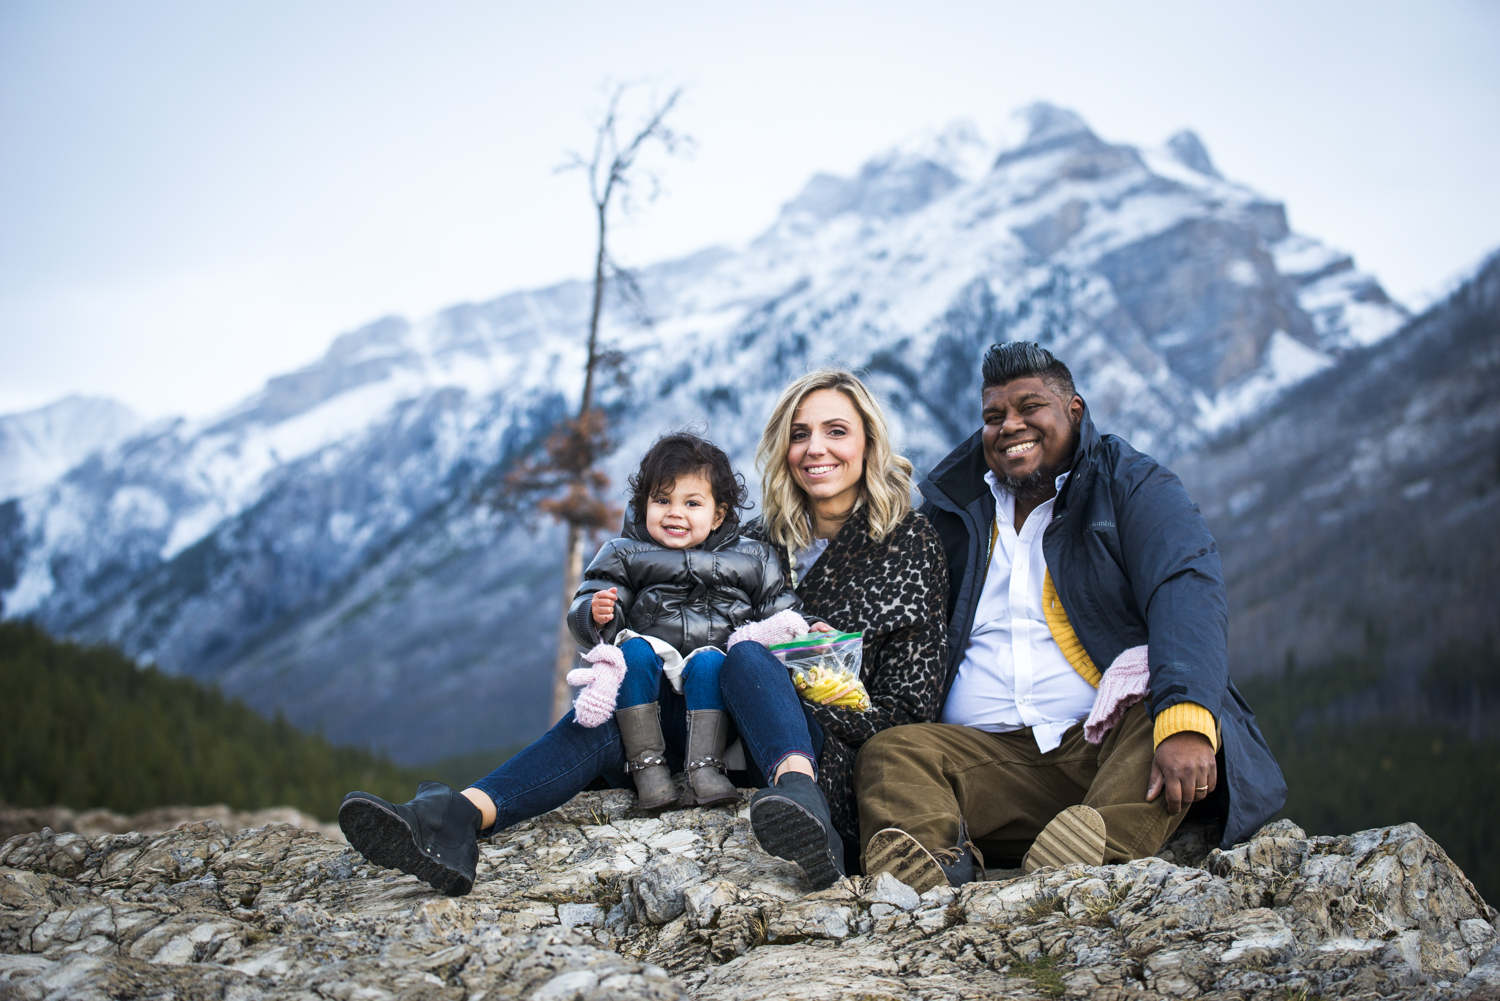 Rachel, Miraj & Charlotte's family photography session